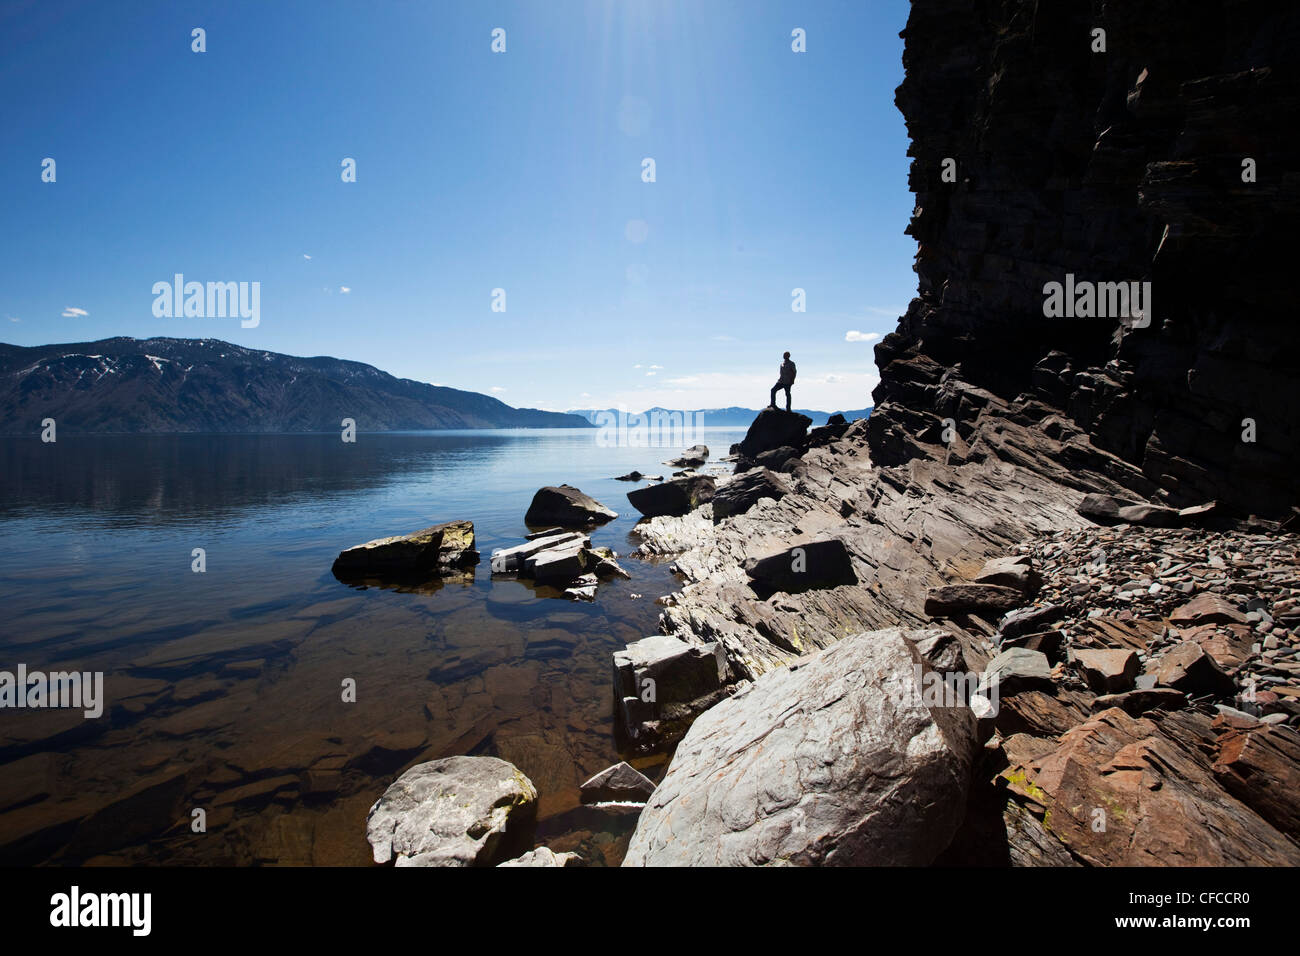 A male figure stands on a rock at the edge of a beautiful lake on a sunny day in Idaho. - Stock Image